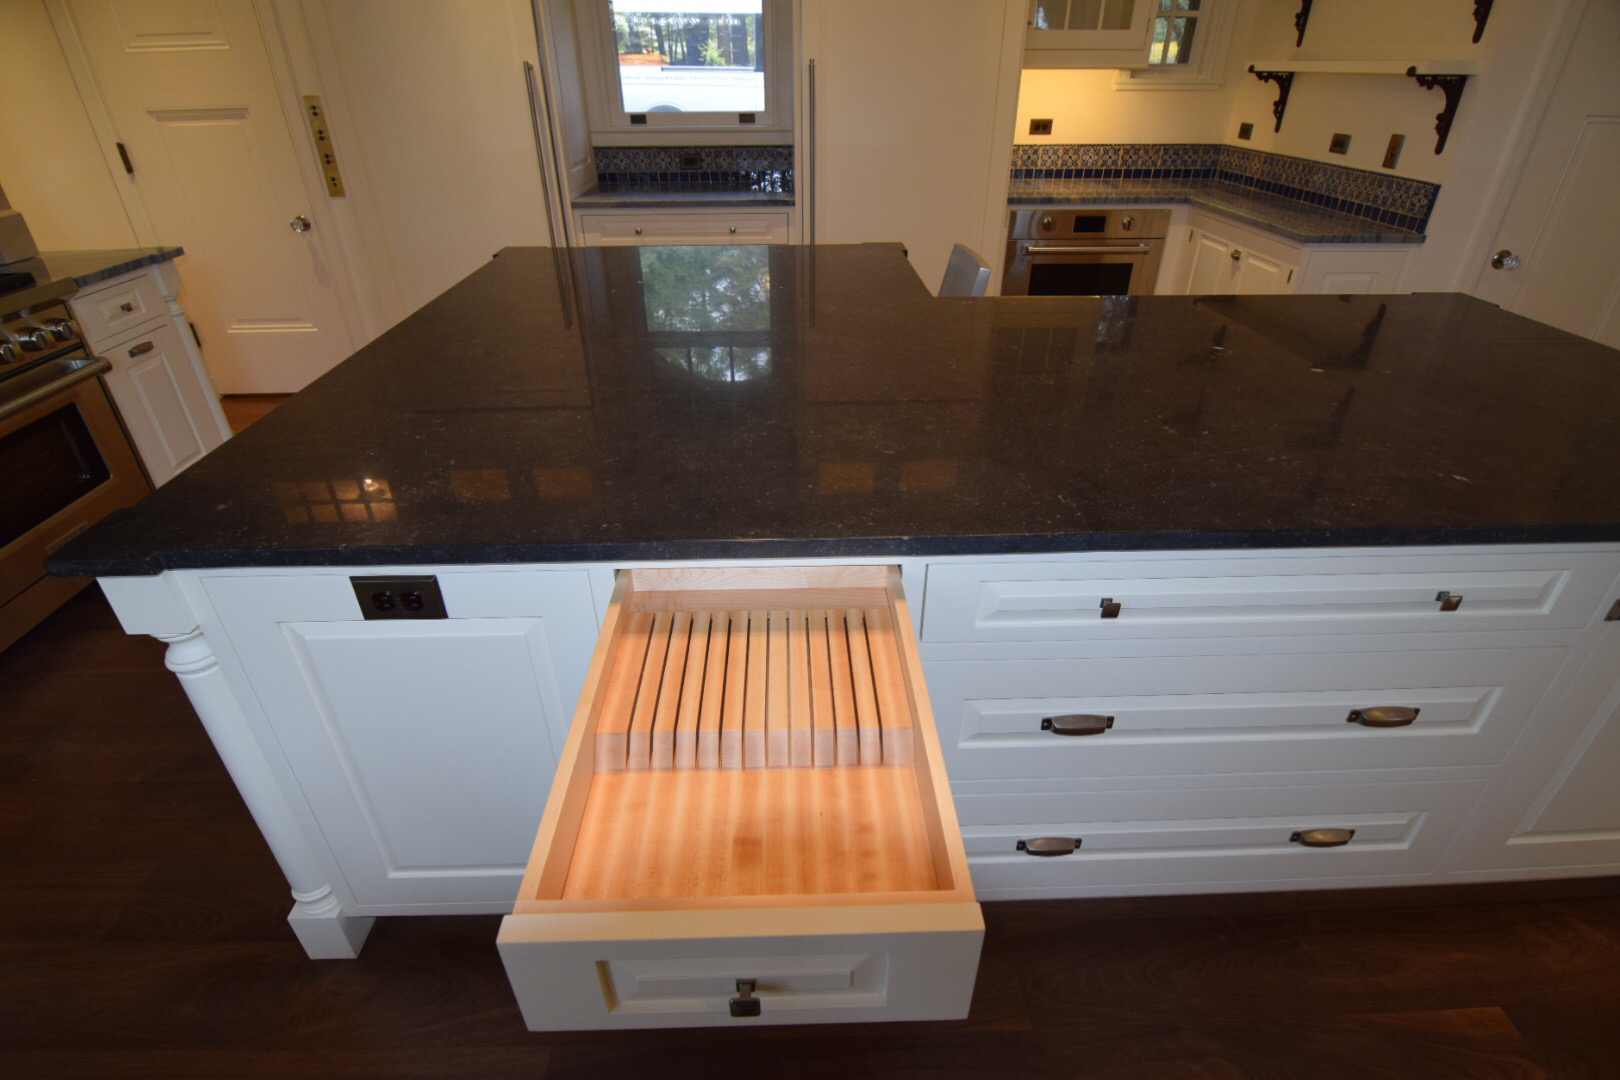 built-in-cooks-knife-drawer-in-custom-white-lacquer-kitchen-with-hard-maple-face-frame-cabinetry-with-inset-doors-and-raised-panels.jpg